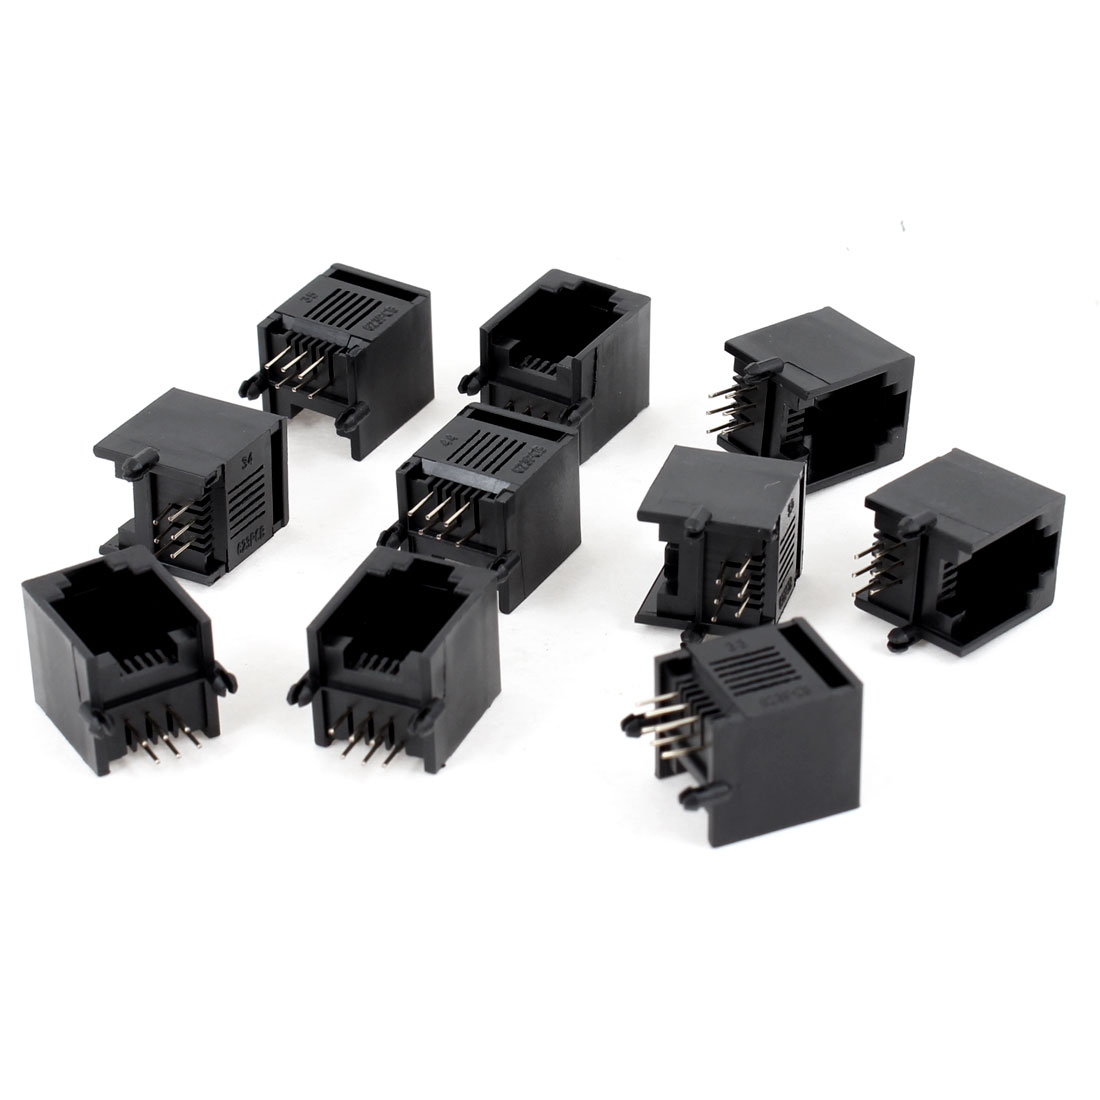 10 Pcs Black Plastic Unshielded RJ12 6P6C Network Modular PCB Connector Jacks